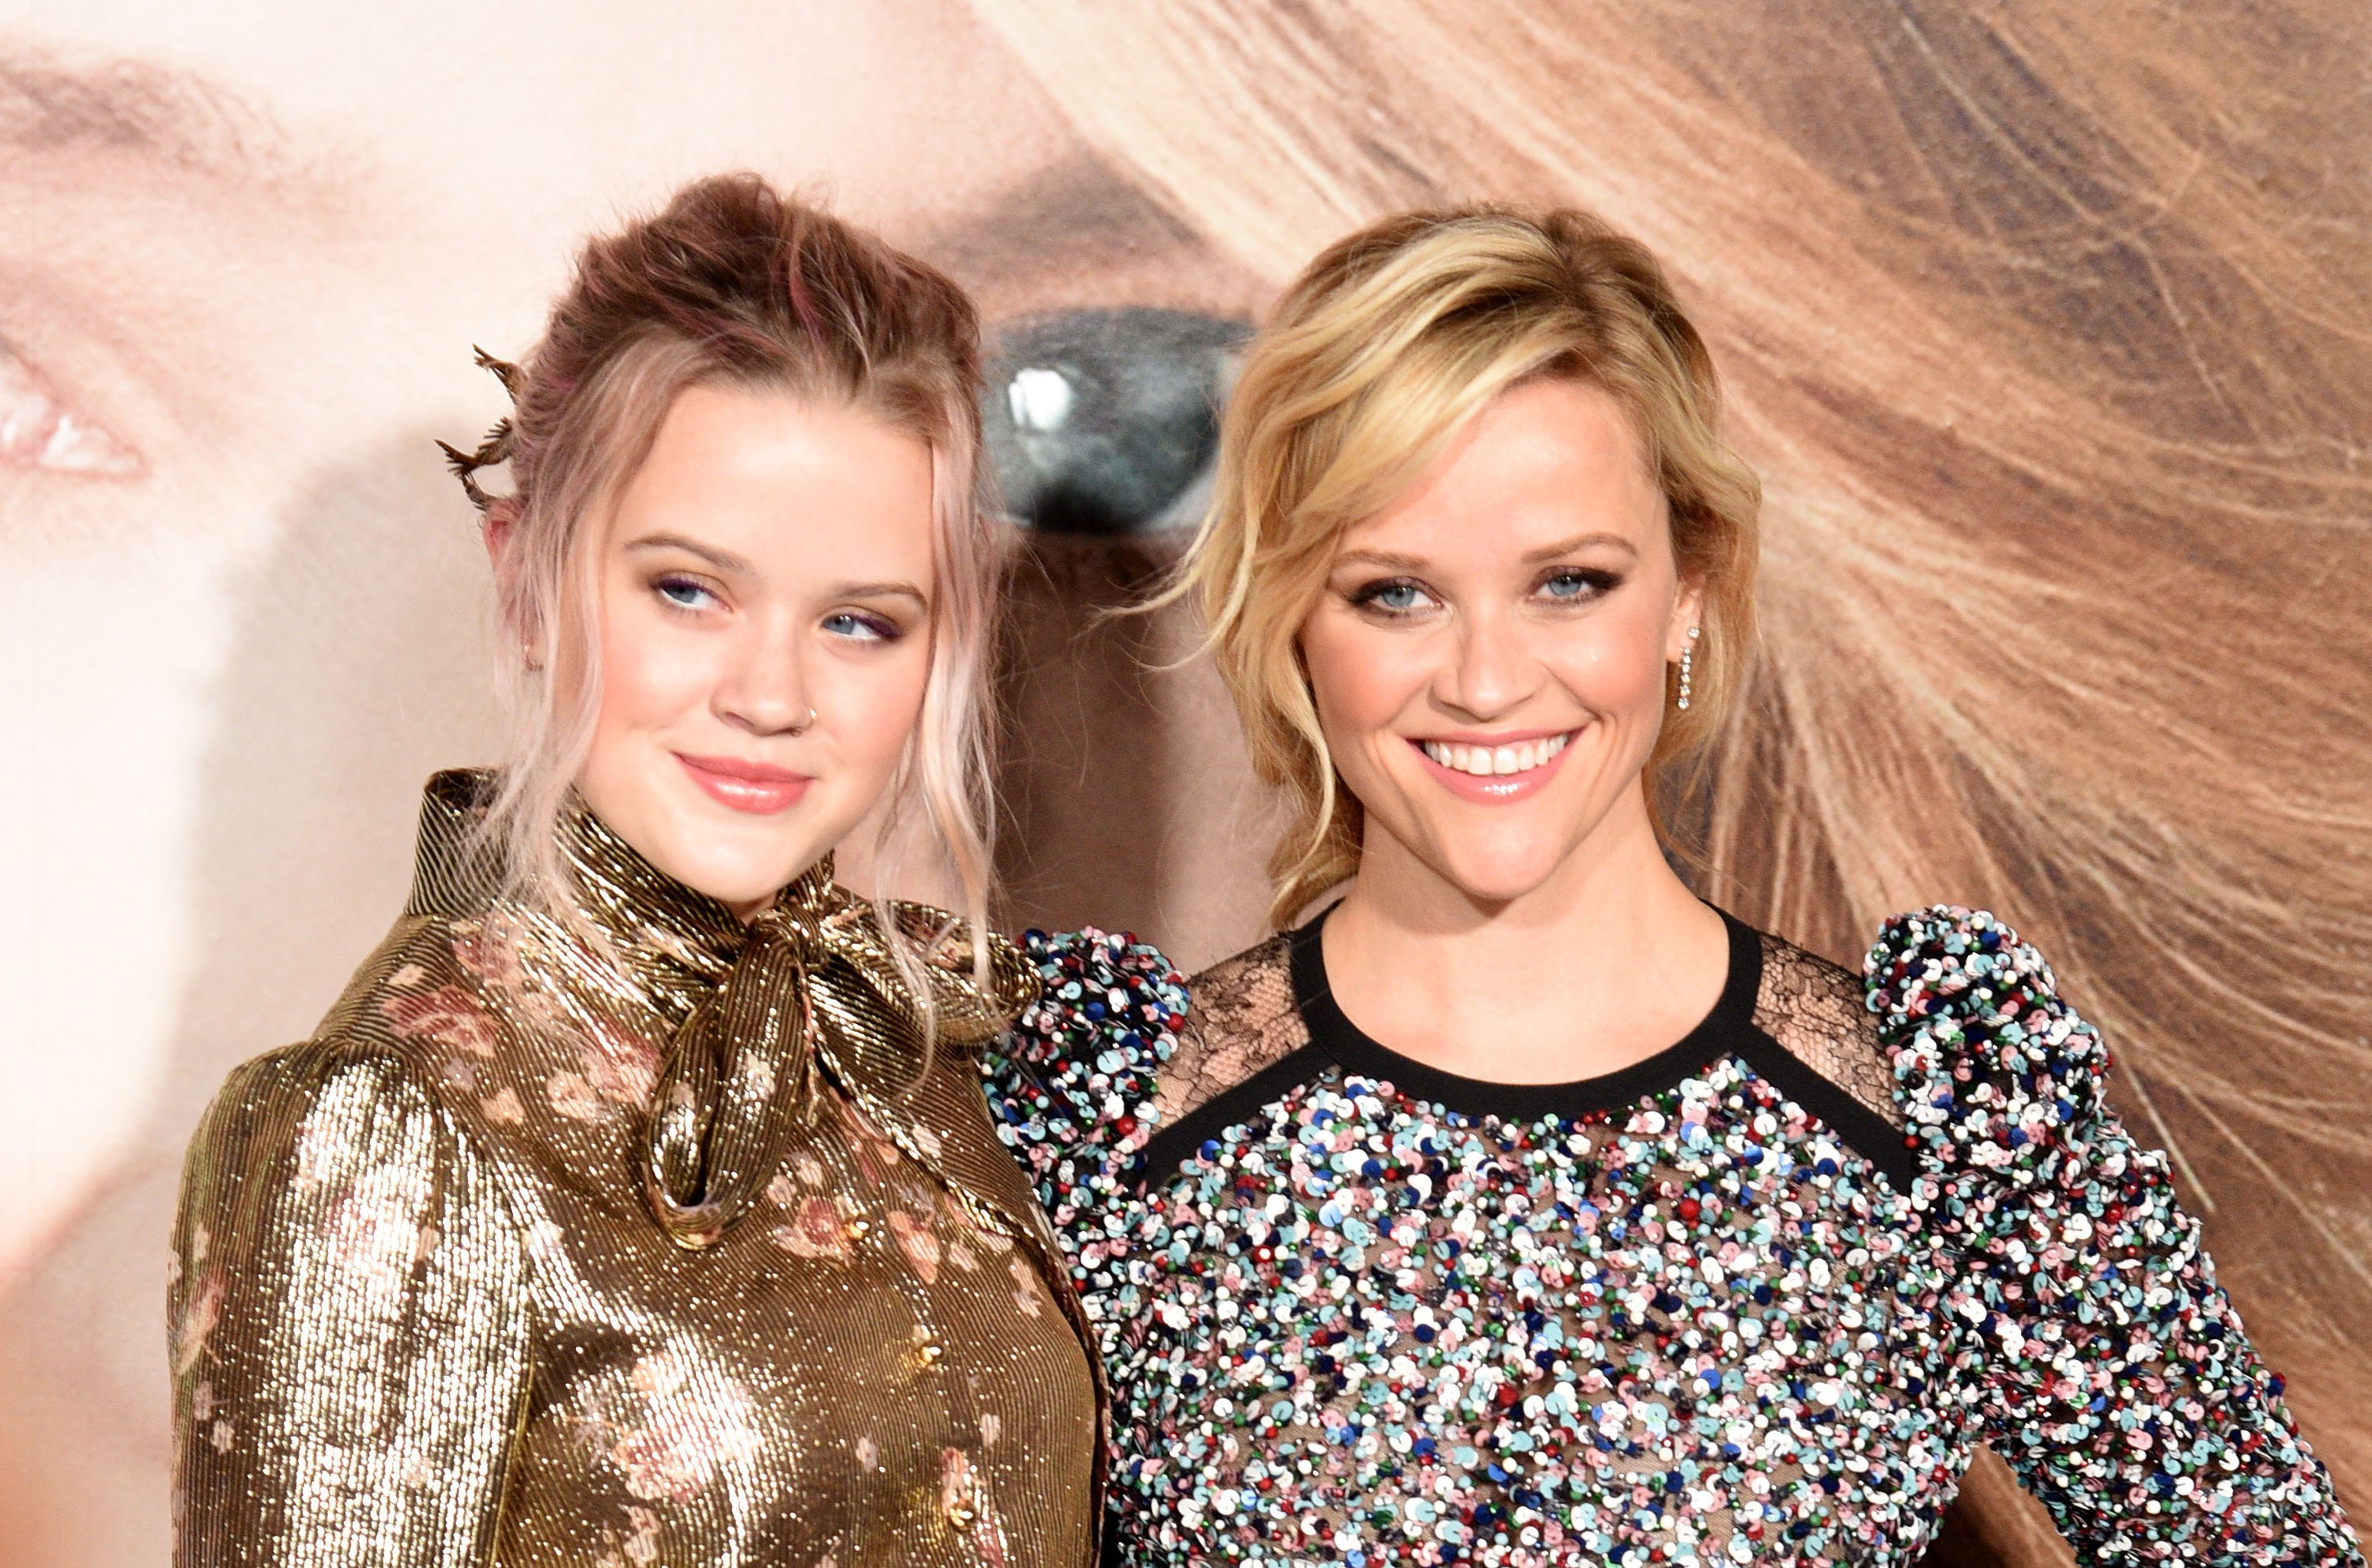 Ava Phillippe and Reese Witherspoon attend the premiere of HBO's 'Big Little Lies' on February 7, 2017, in Hollywood, California. | Source: Getty Images.